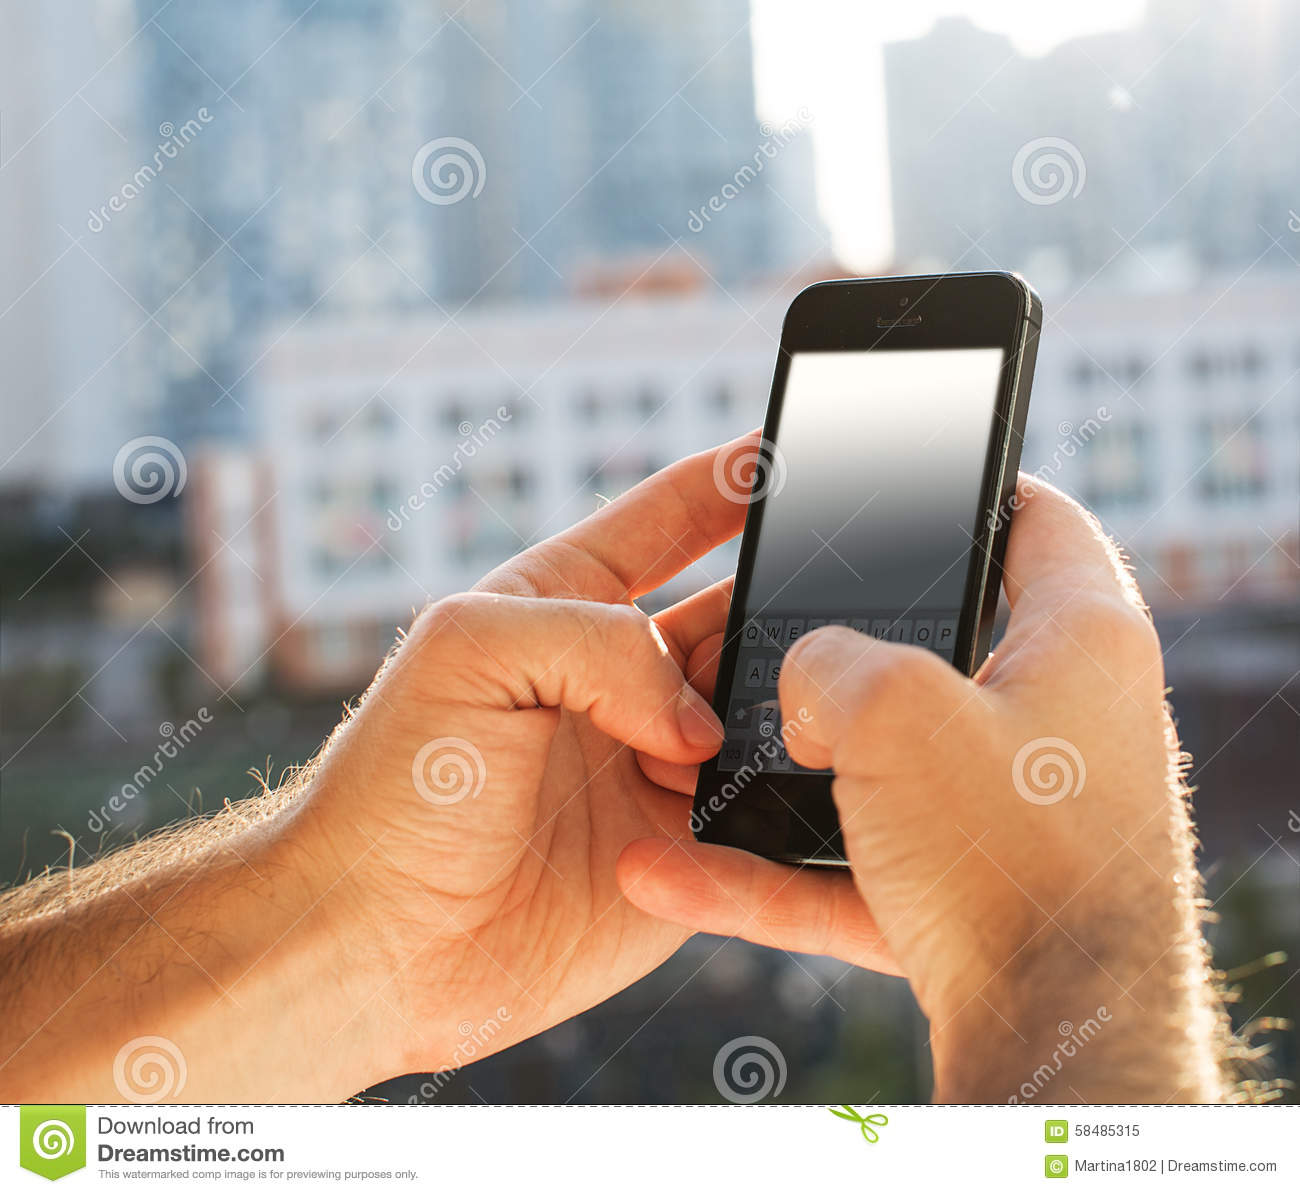 using a smart phone There are now a handful of new syndromes that come with your smartphone addiction.